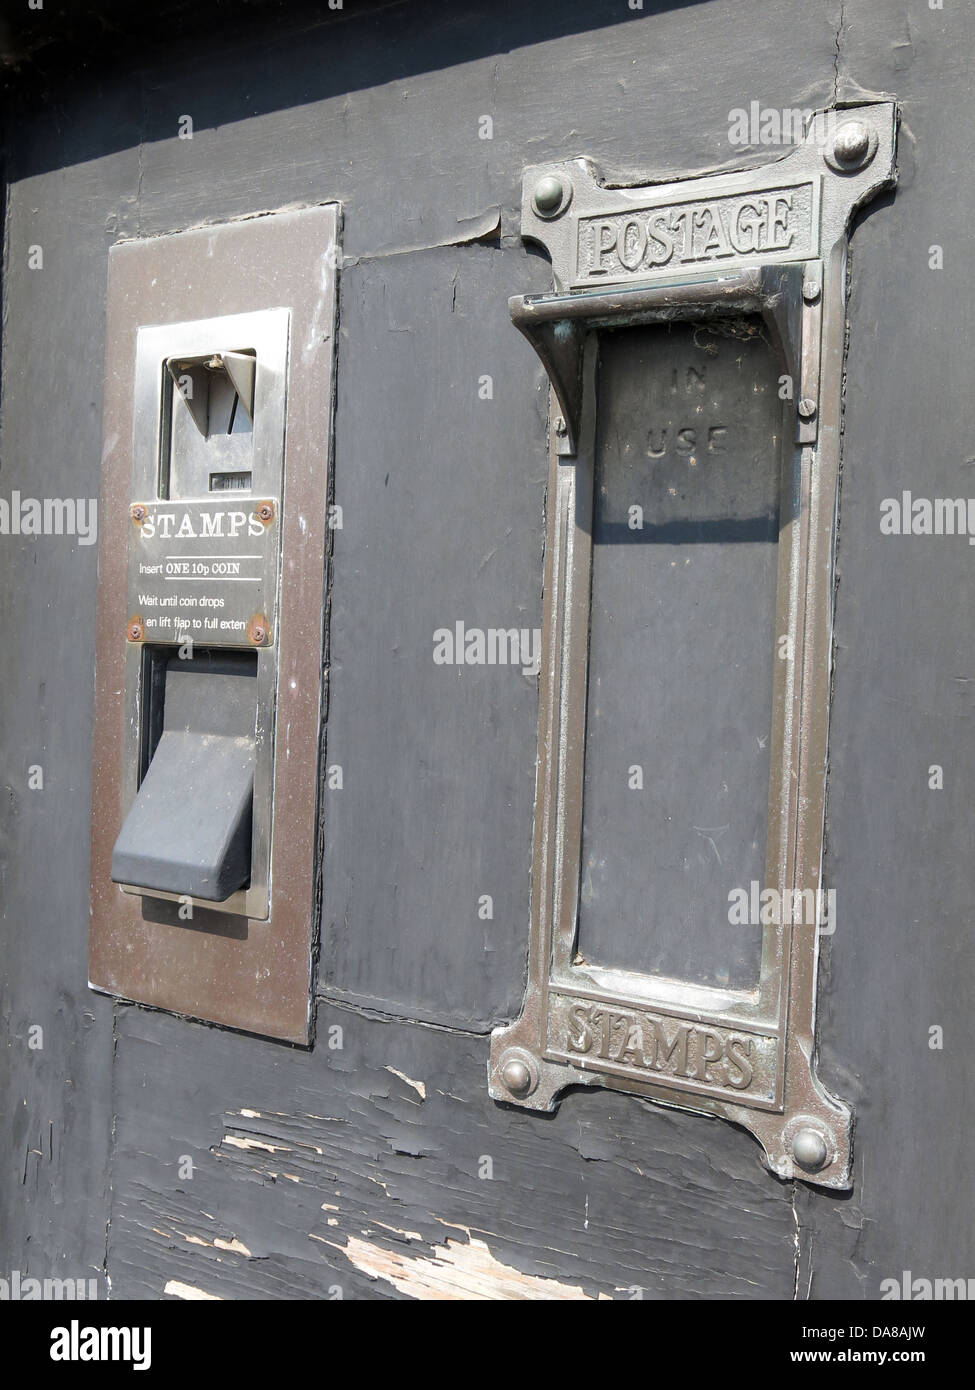 Royal Mail, Post Office Stamp machine, Manchester, North West England, UK - Stock Image